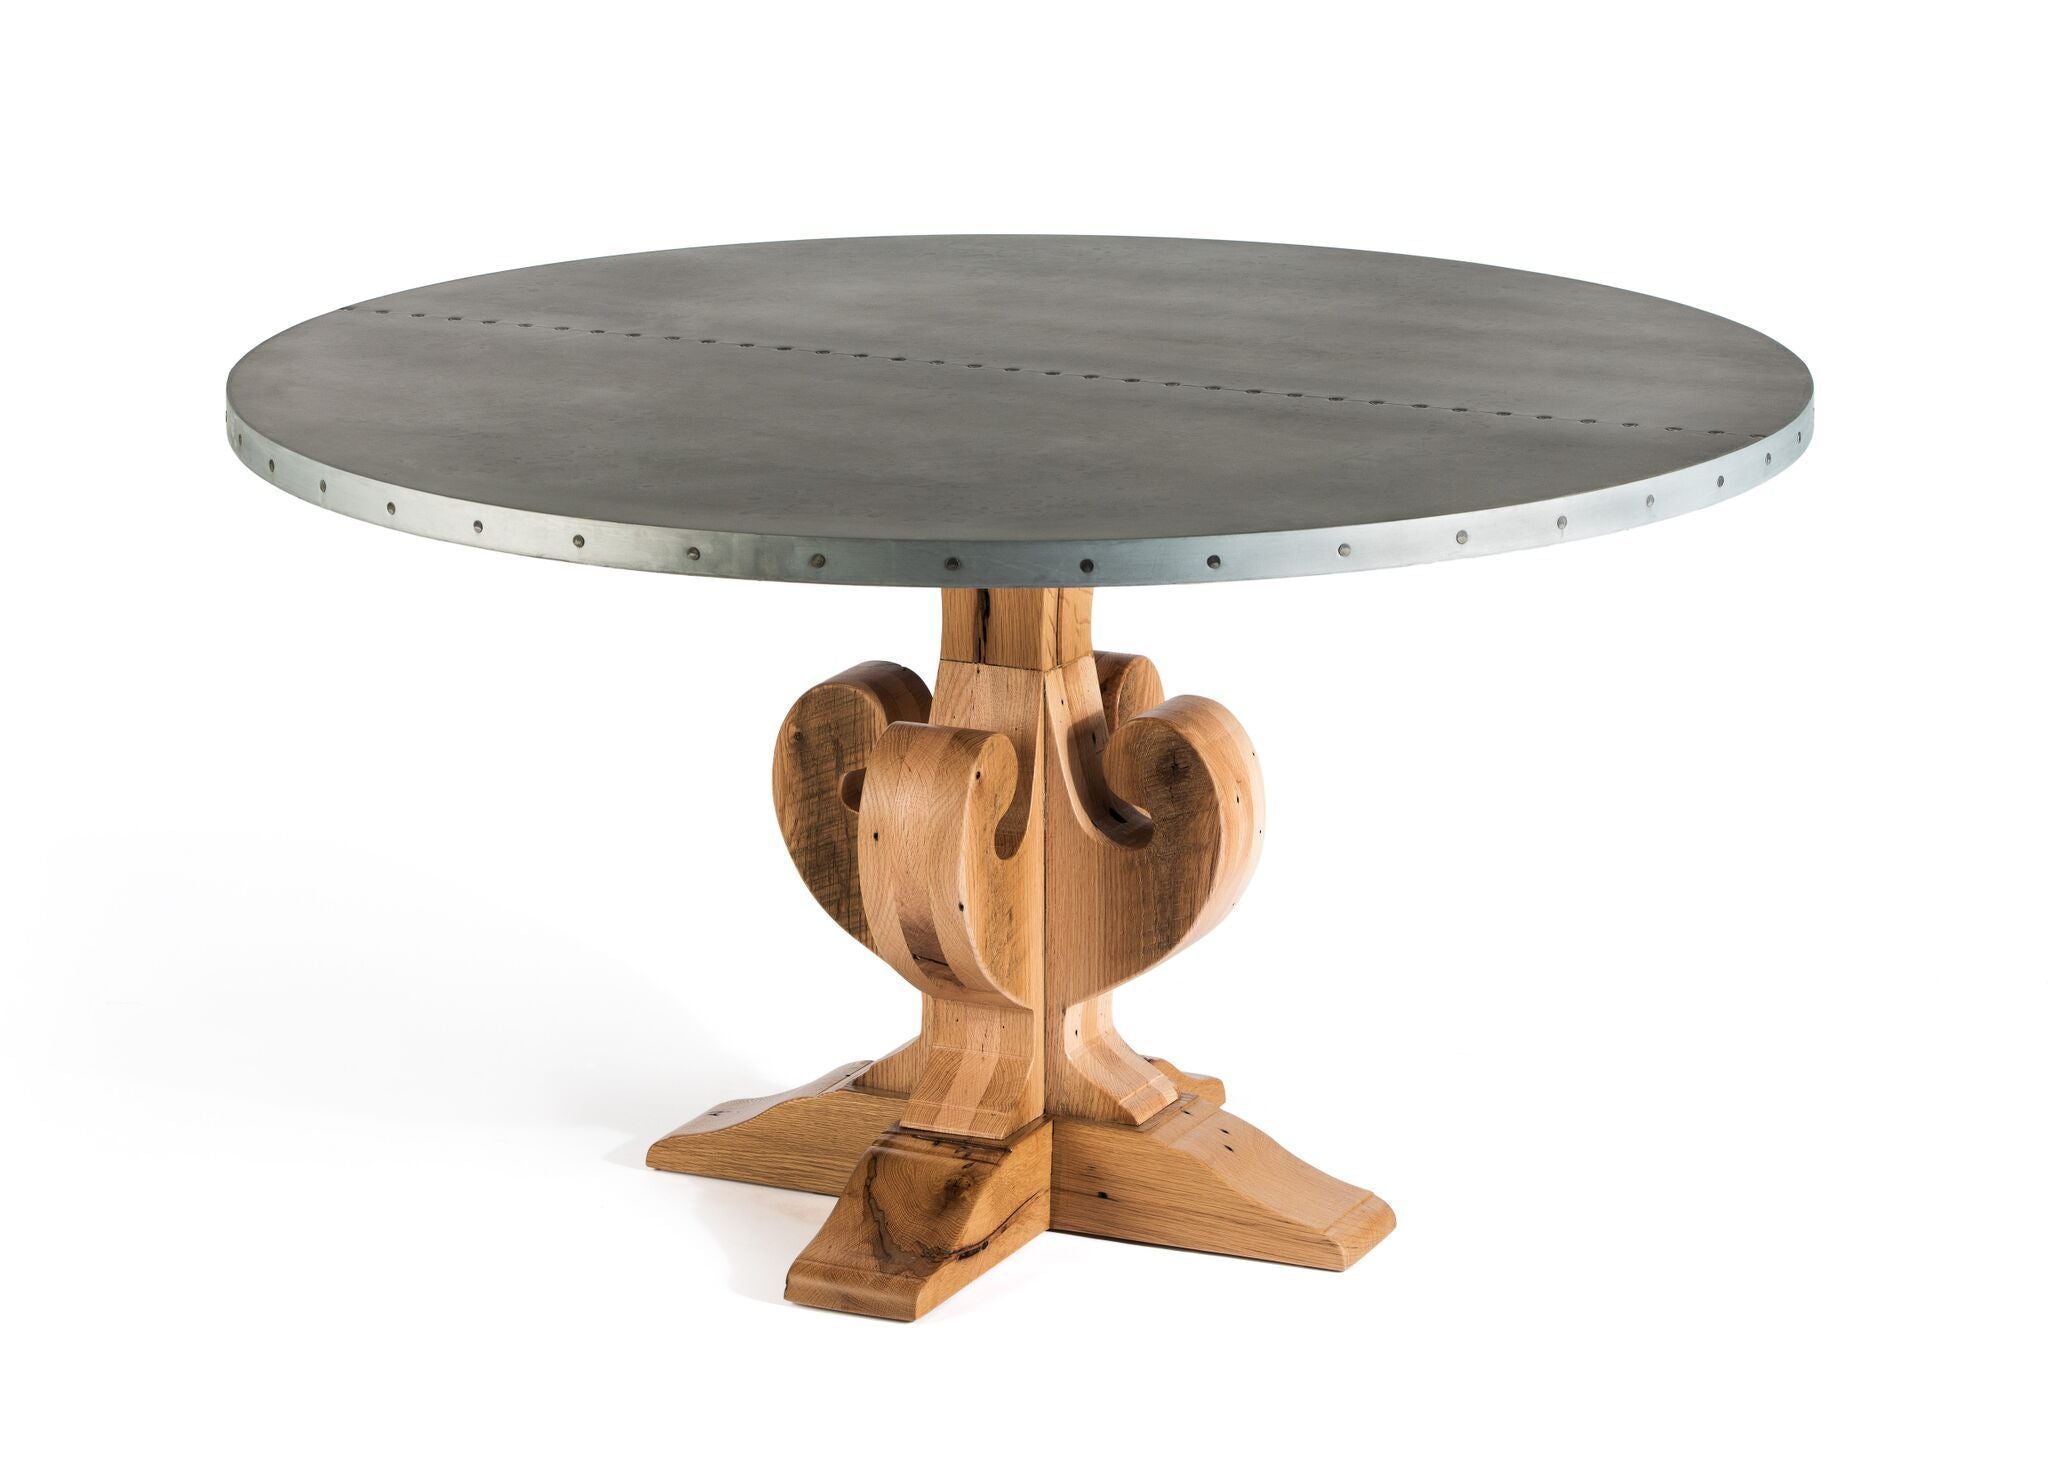 "Zinc Round Tables | Fairfield Trestle | CLASSIC | Natural Black Walnut | CUSTOM SIZE L 68 W undefined H undefined | 2.5"" kingston-krafts-zinc-tables."